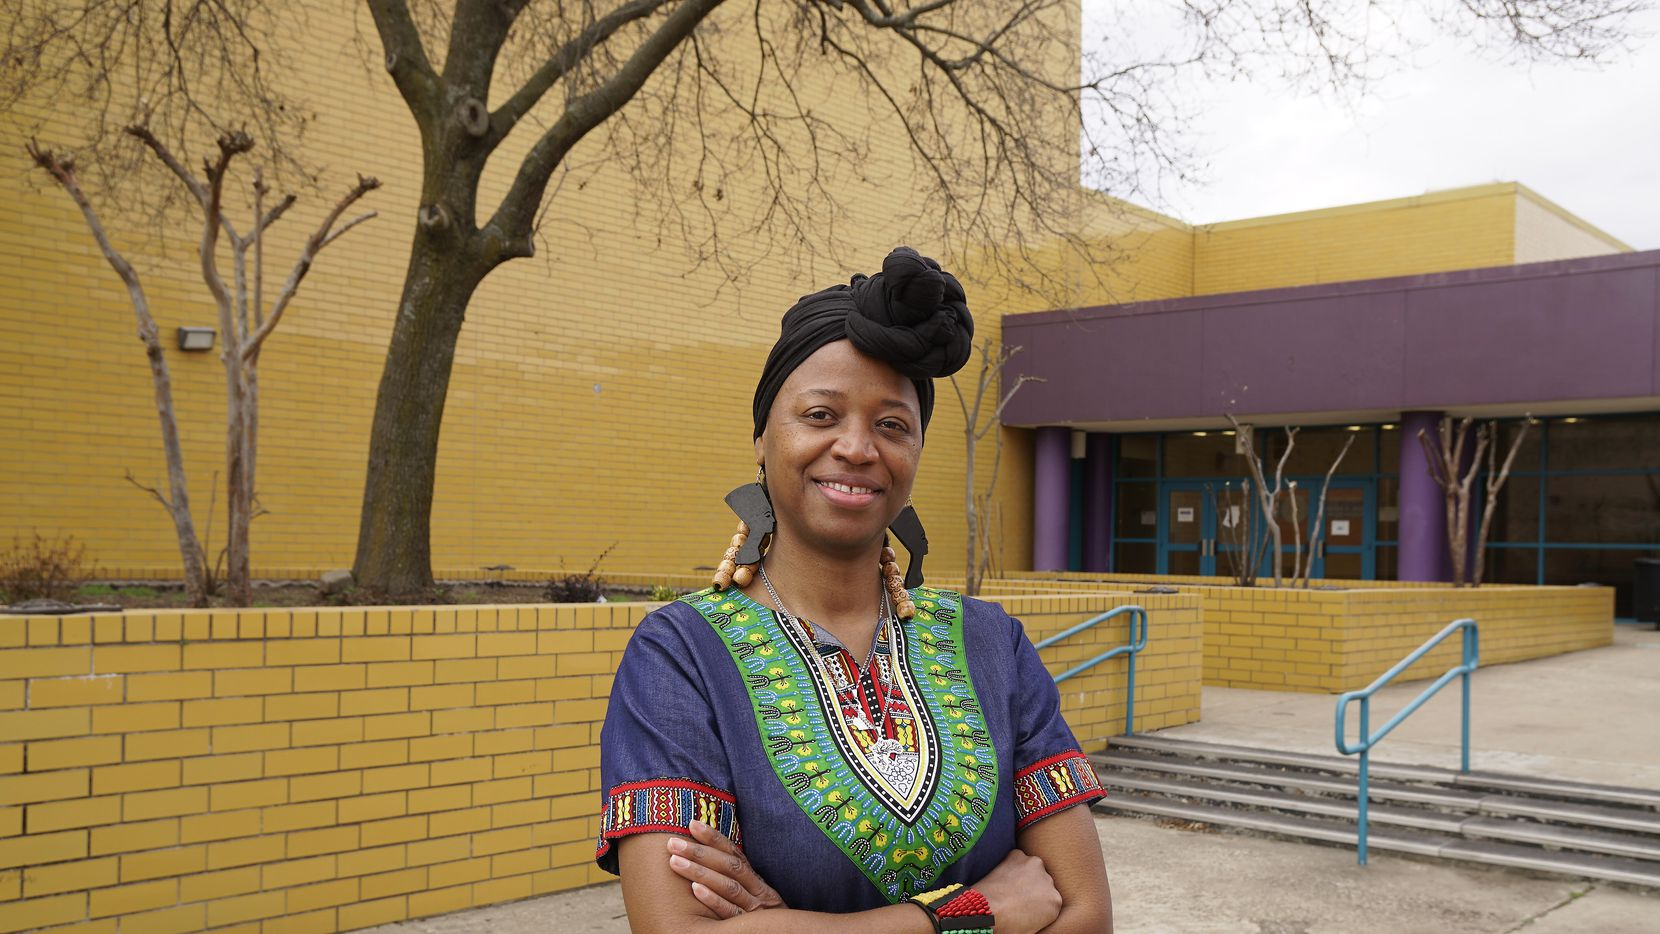 Molina High School African American Studies teacher Tracy Smith at the school in Duncanville, Texas on Friday, February 5, 2021.